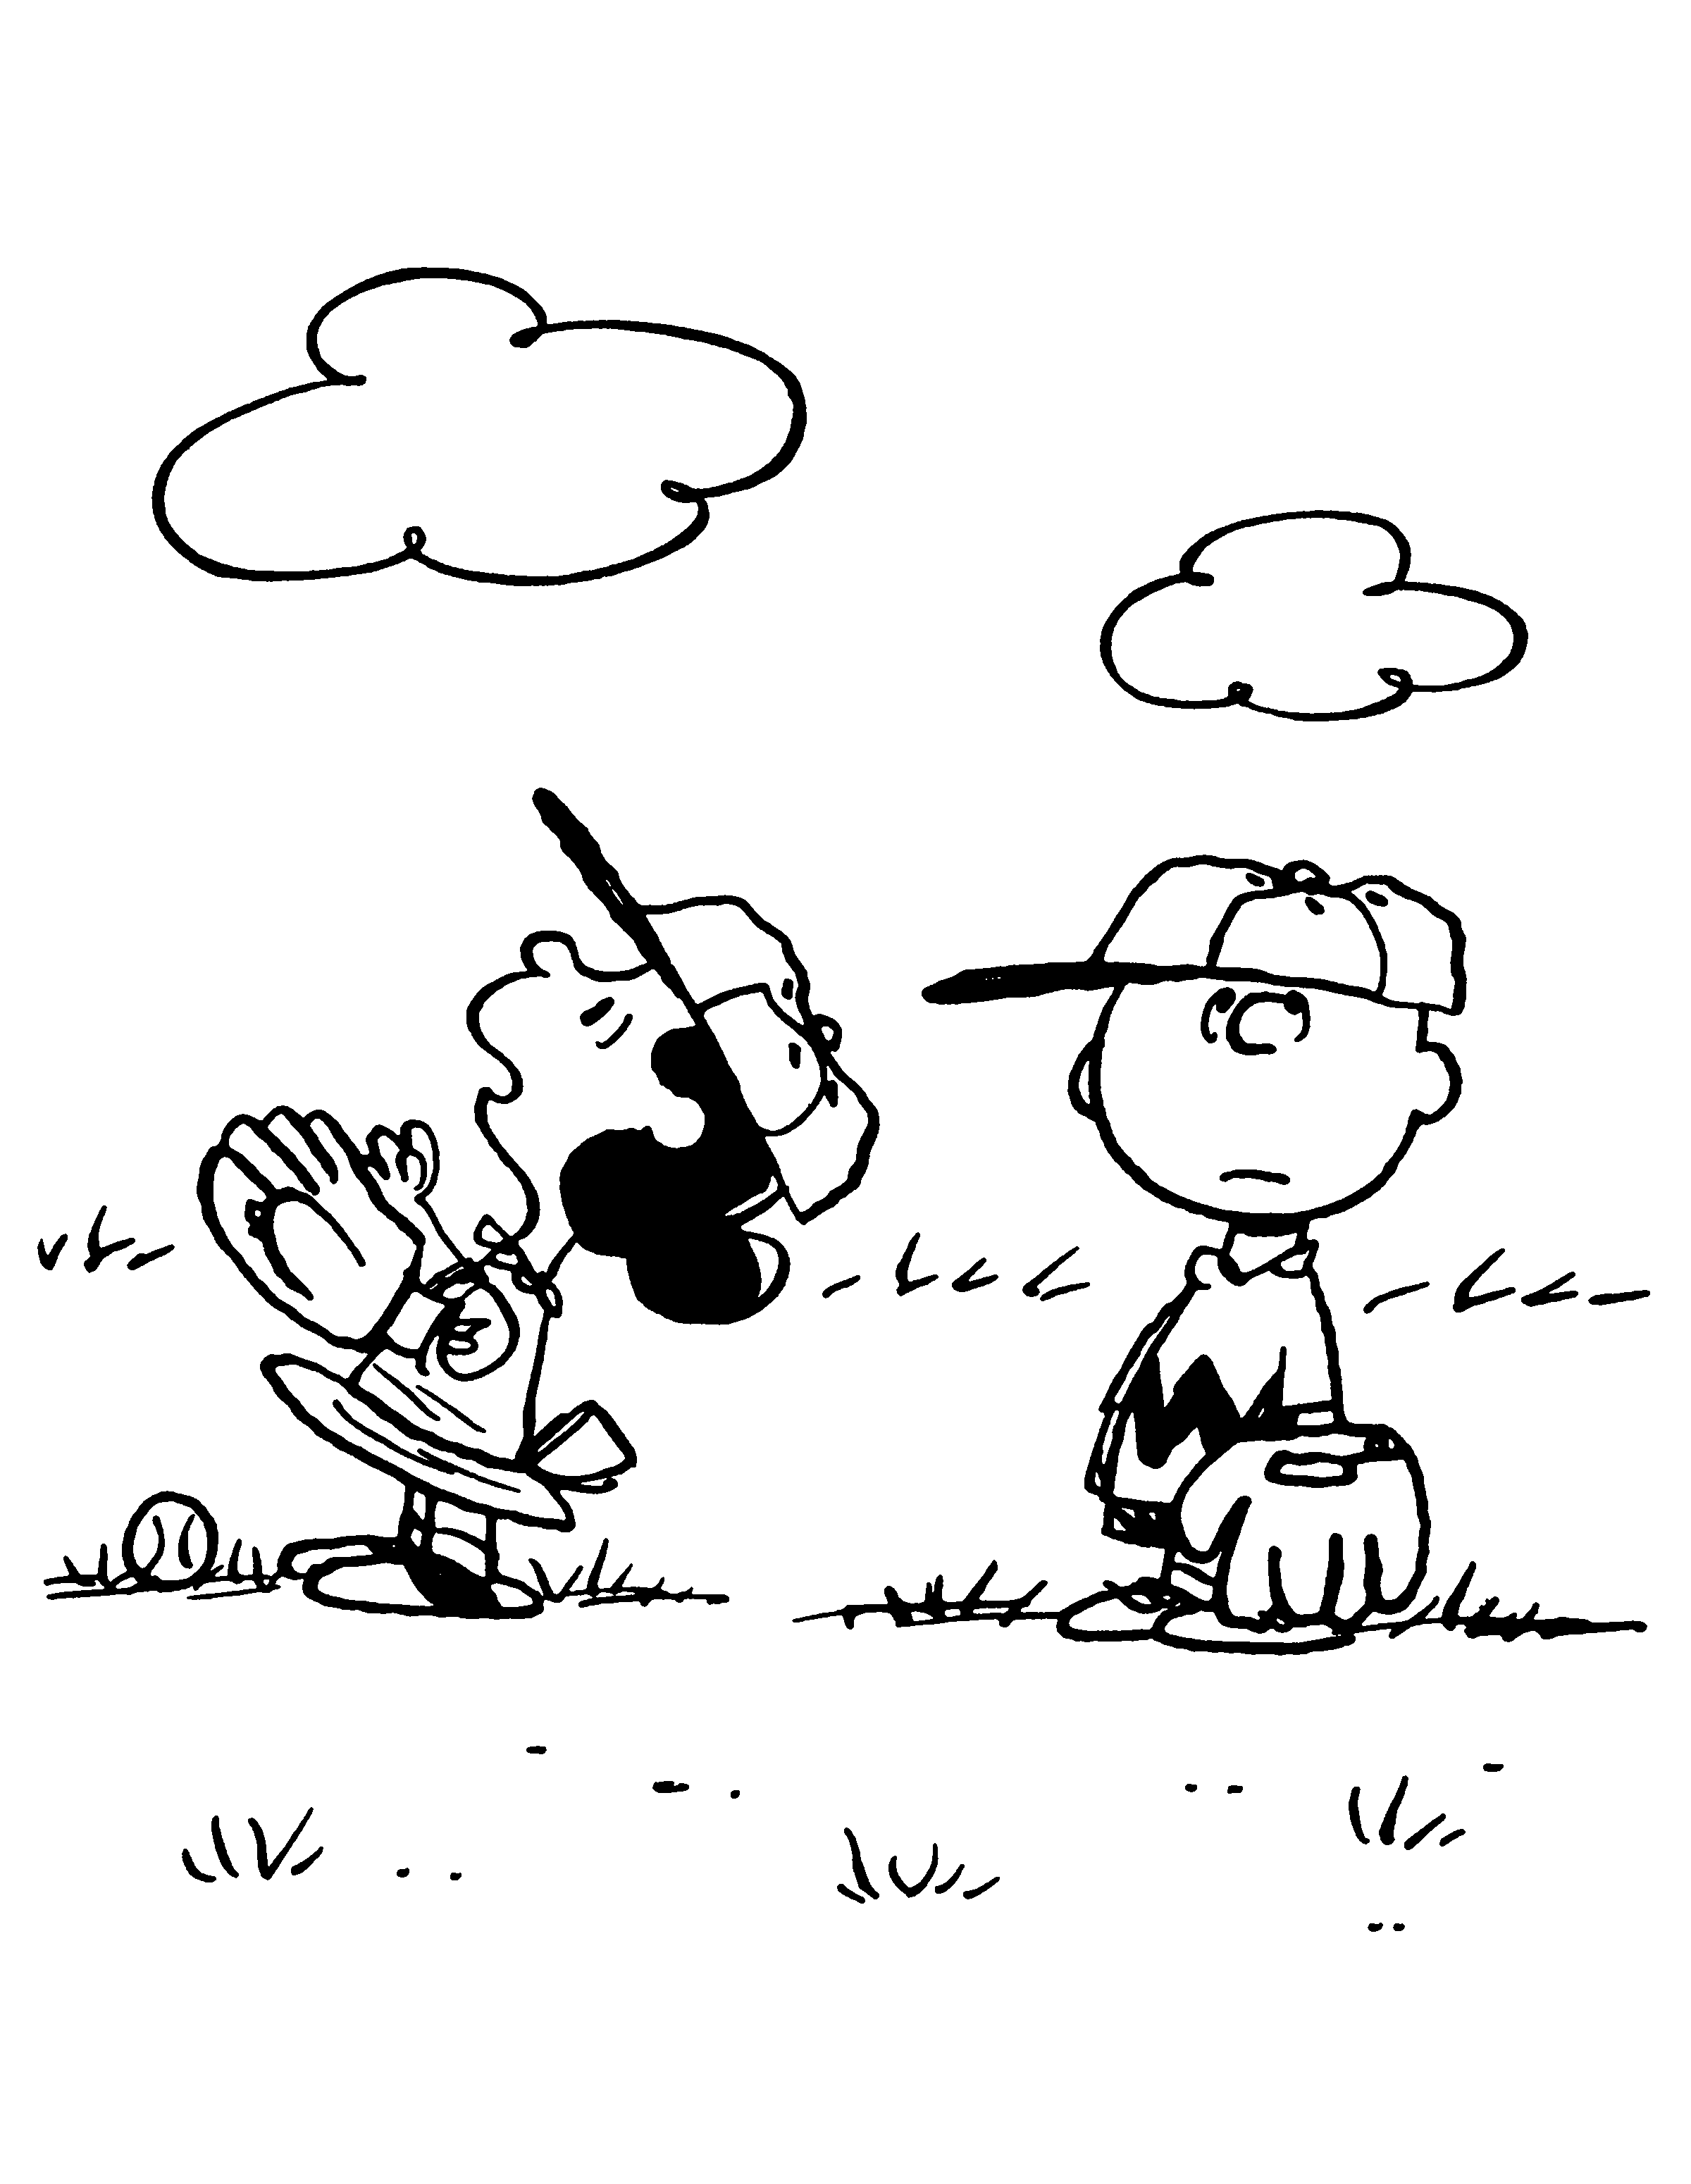 peanuts comics coloring pages - photo#33